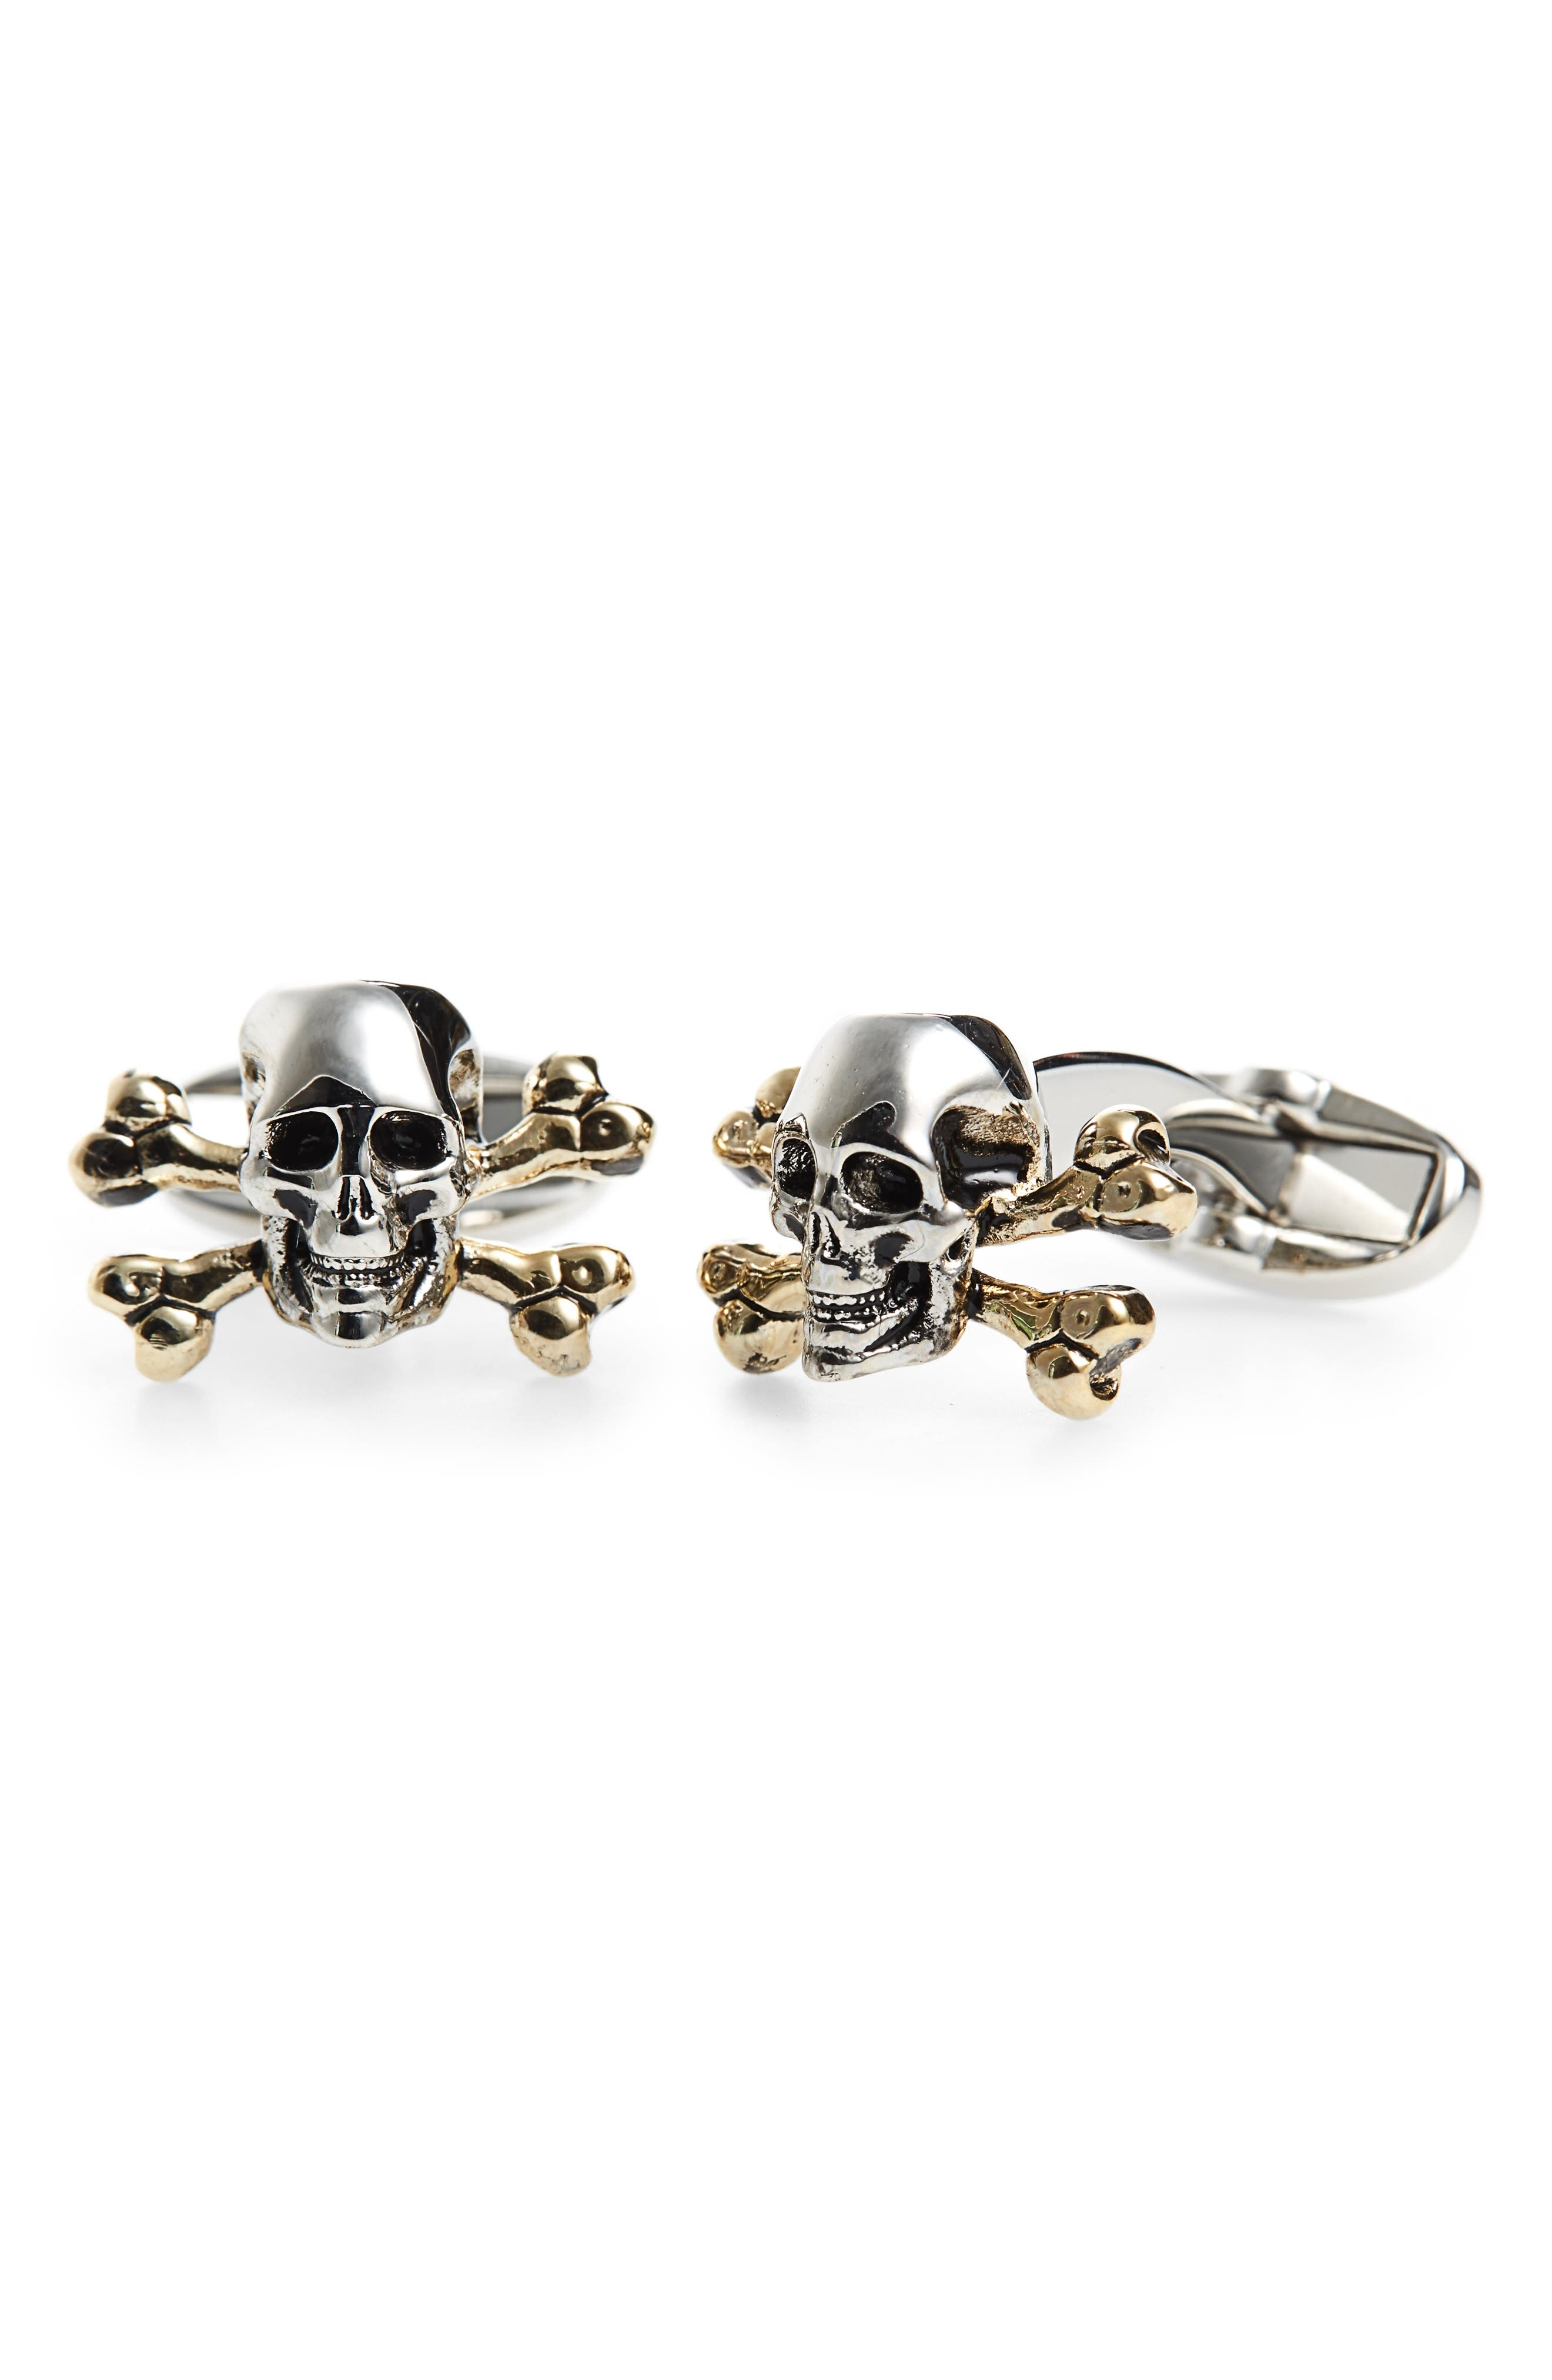 PAUL SMITH Skull Cuff Links